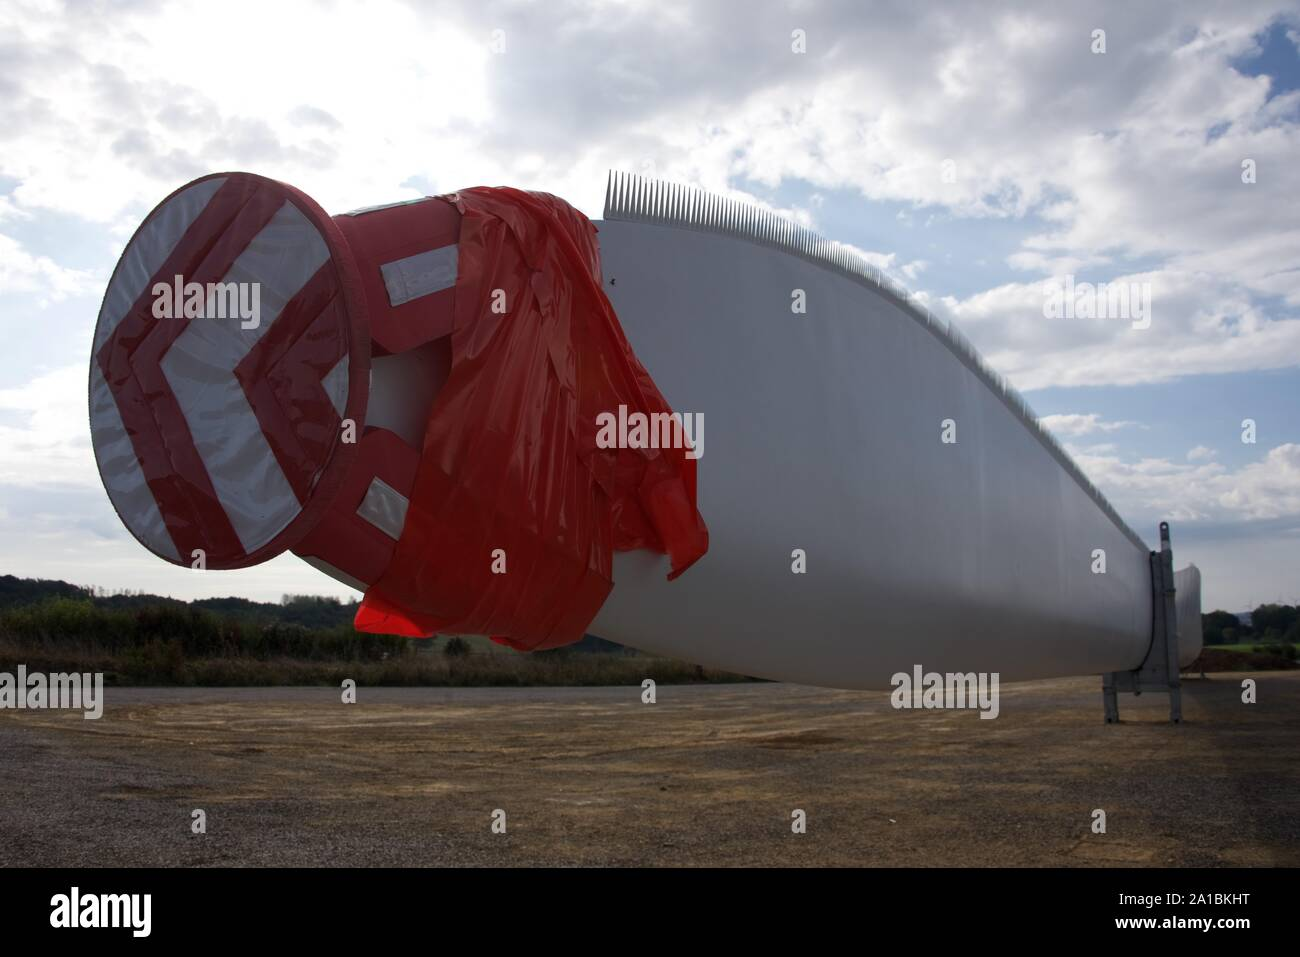 Wind turbine blades poised for distribution to new wind turbine sites throughout the region of northern France Stock Photo